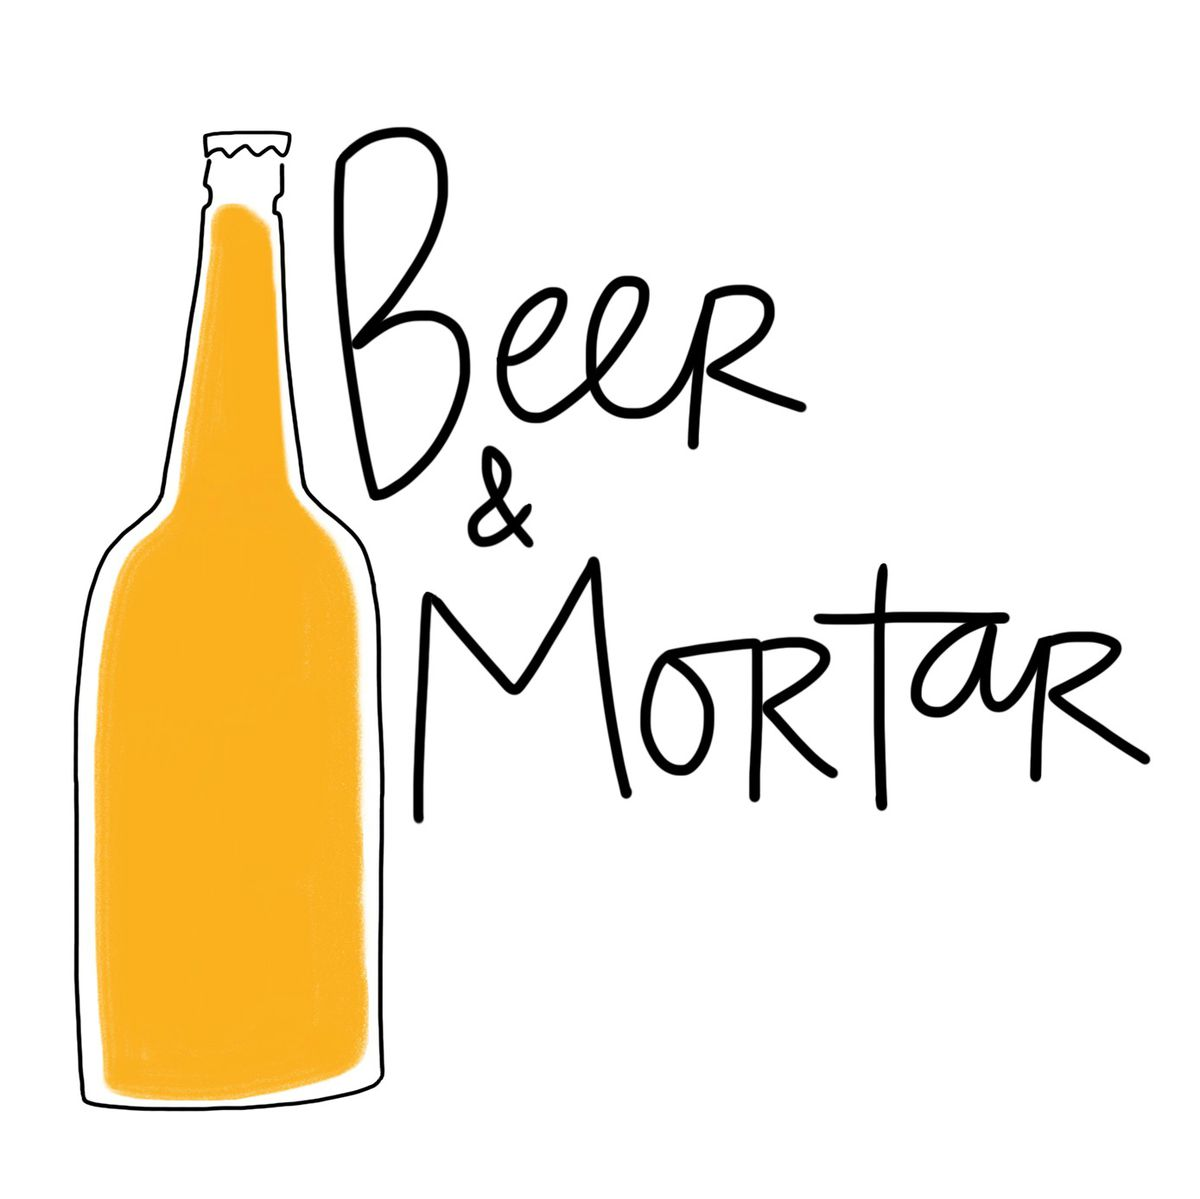 Beer and Mortar logo square